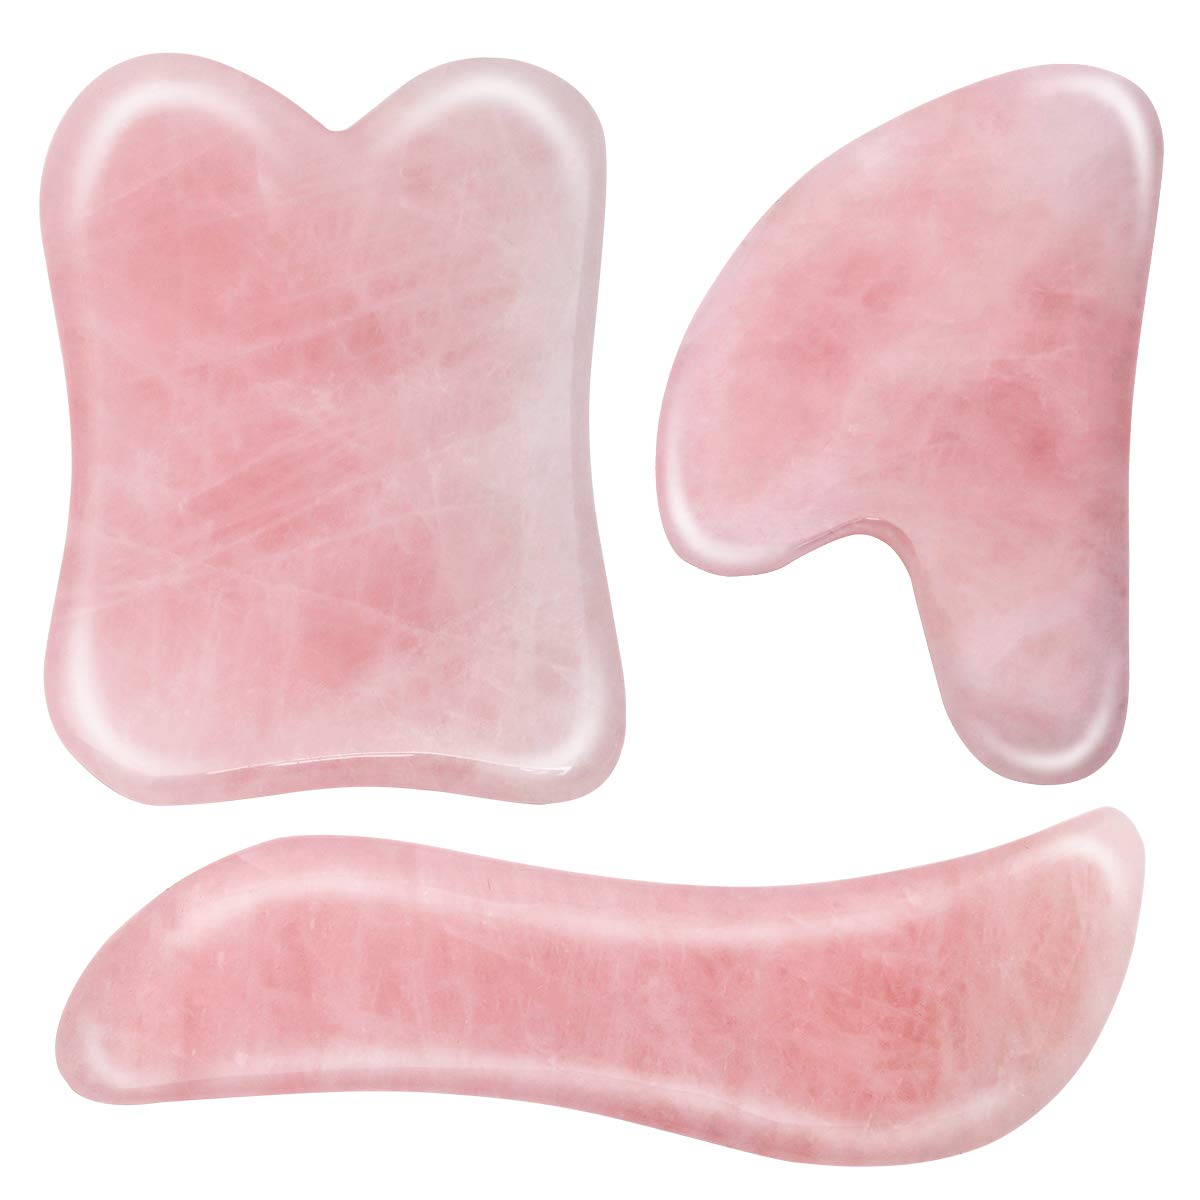 3 Pack Jade Gua Sha Scraping Massage Tool, Pink Natural Stone Guasha Board for SPA Acupuncture Therapy Trigger Point Treatment by Ahier